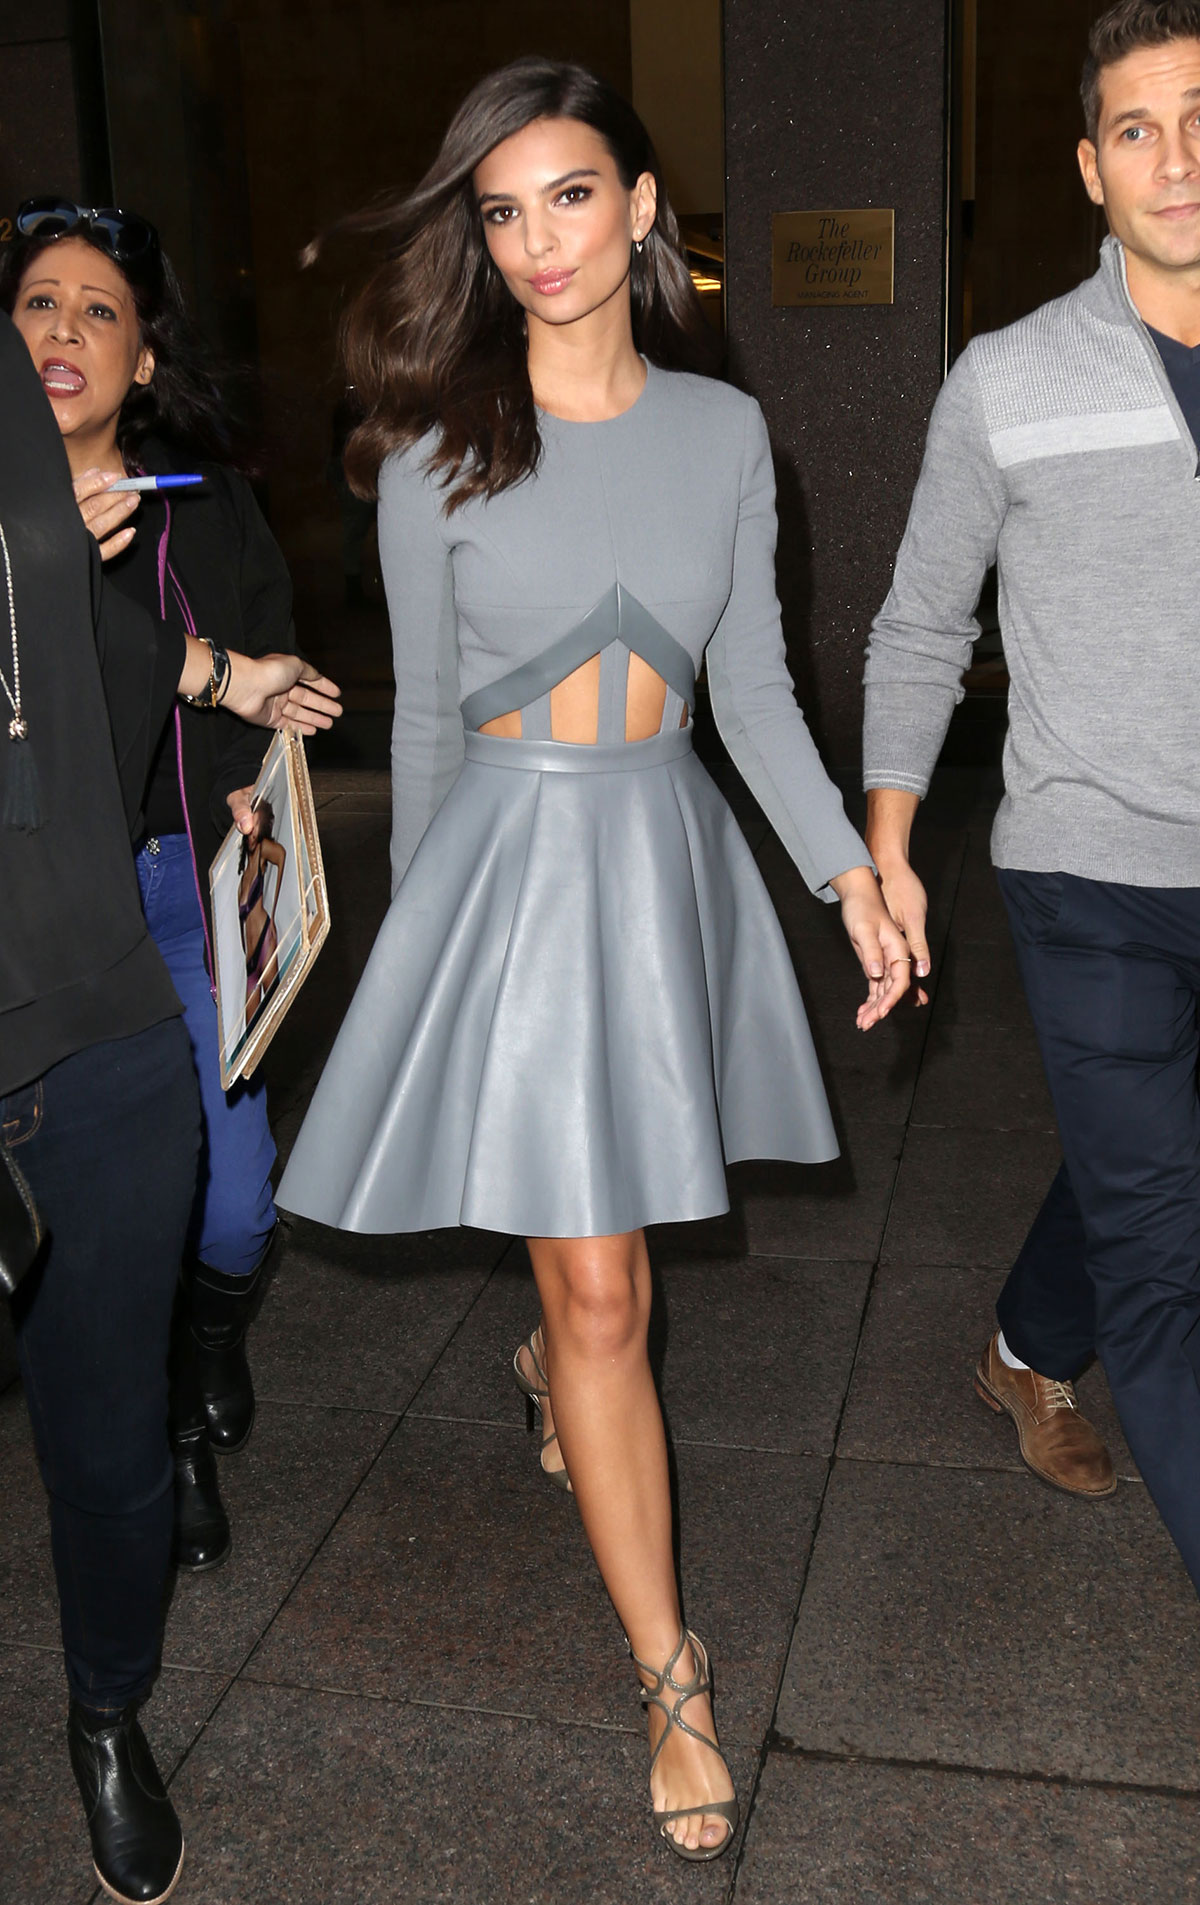 Emily Ratajkowski leaving her hotel in NYC